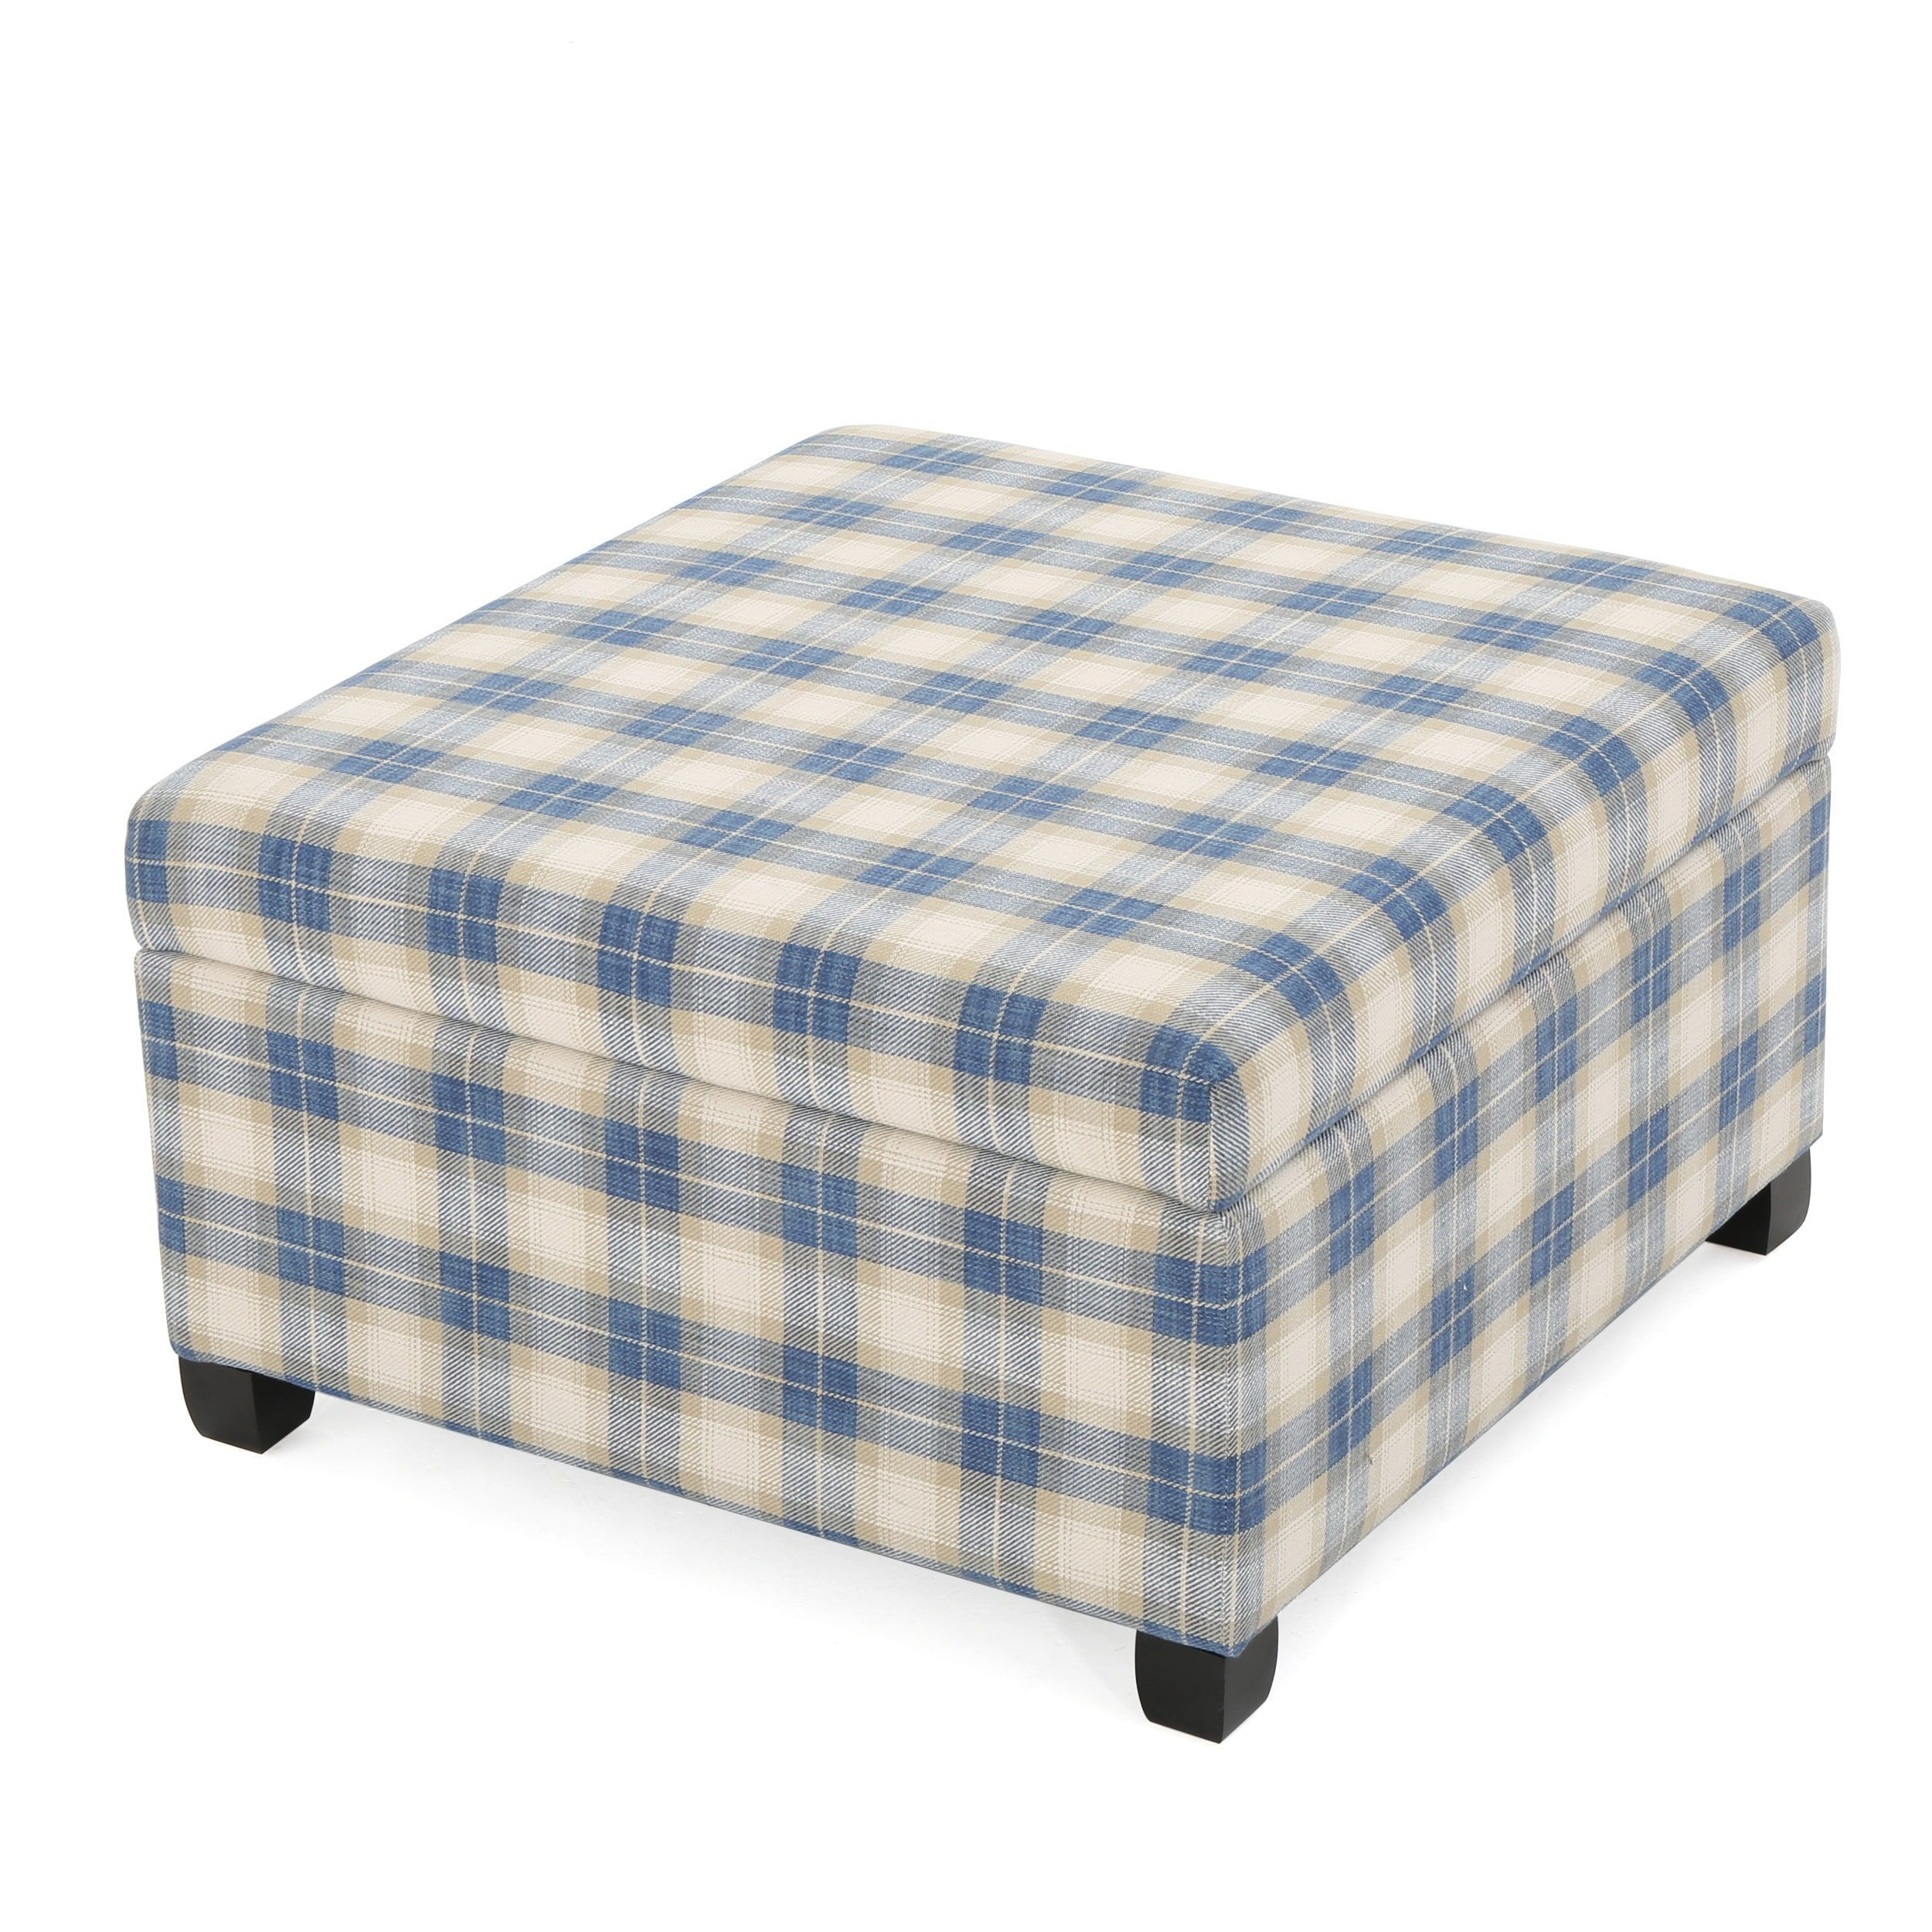 Matteo Plaid Pattern Fabric Square Storage Ottoman Bench By Christopher  Knight Home (Blue Plaid)